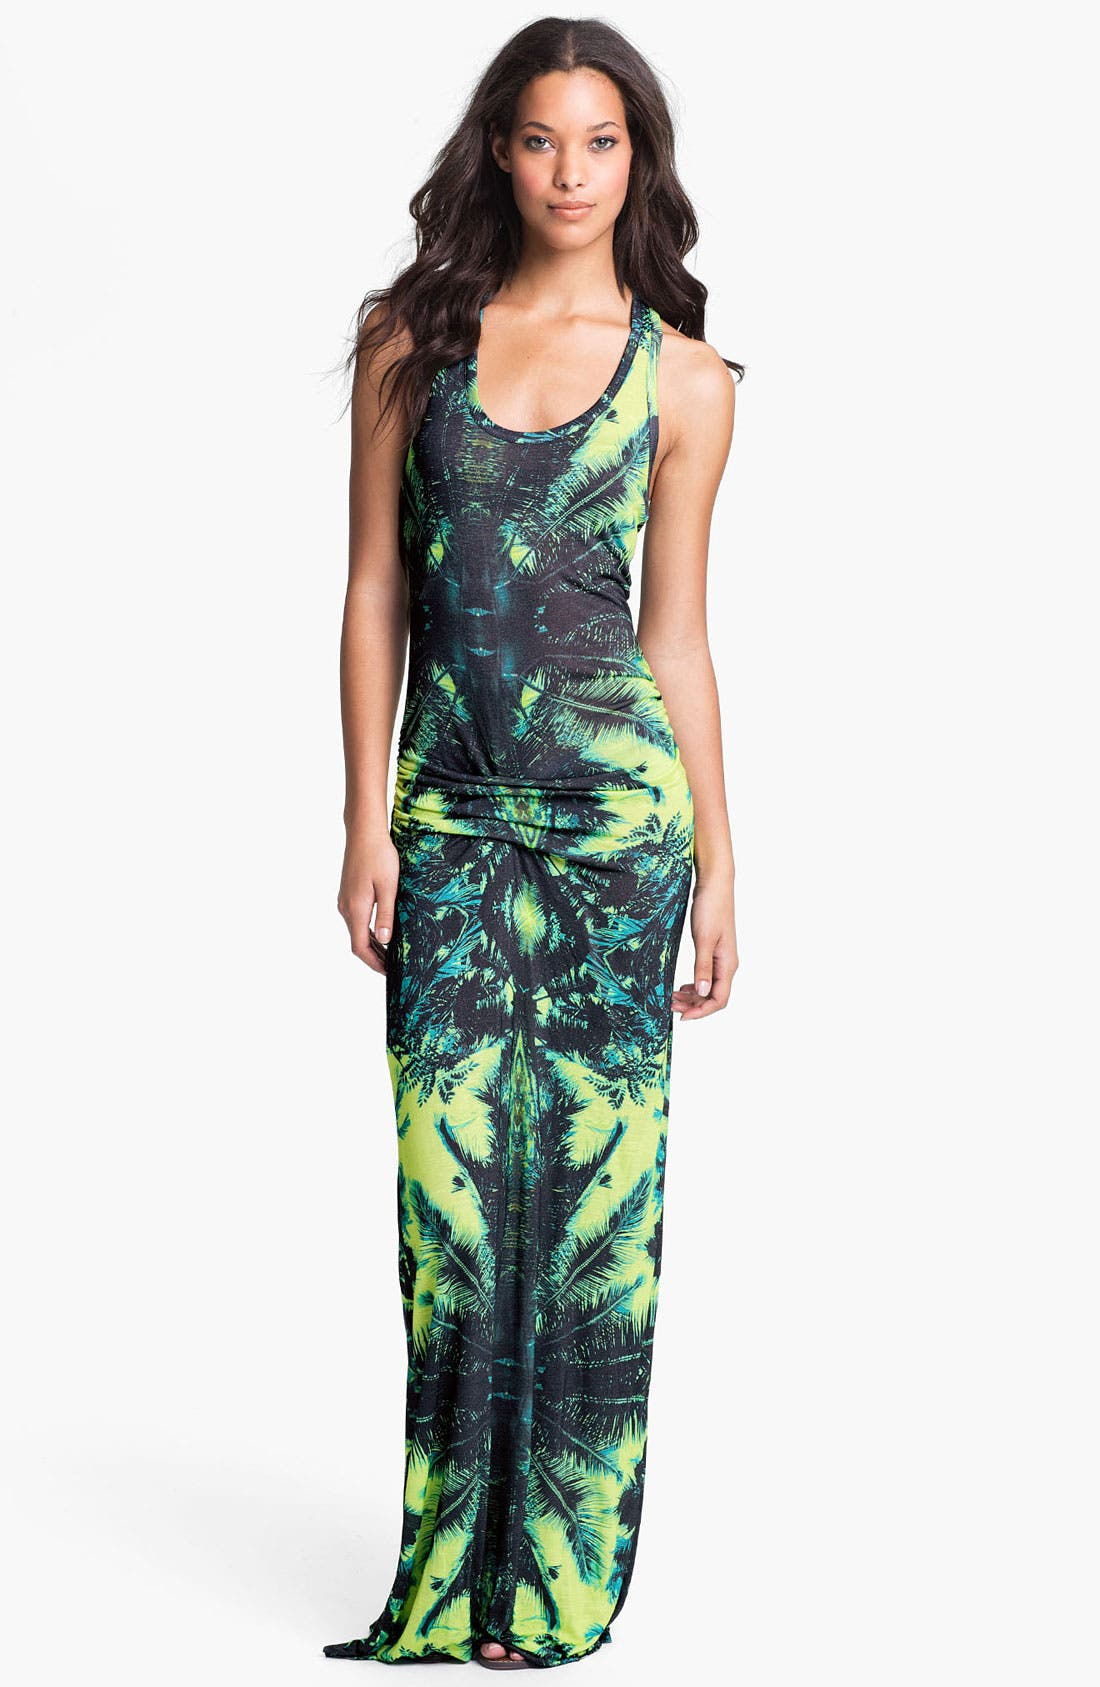 Alternate Image 1 Selected - Young, Fabulous & Broke 'Hamptons' Print Racerback Maxi Dress